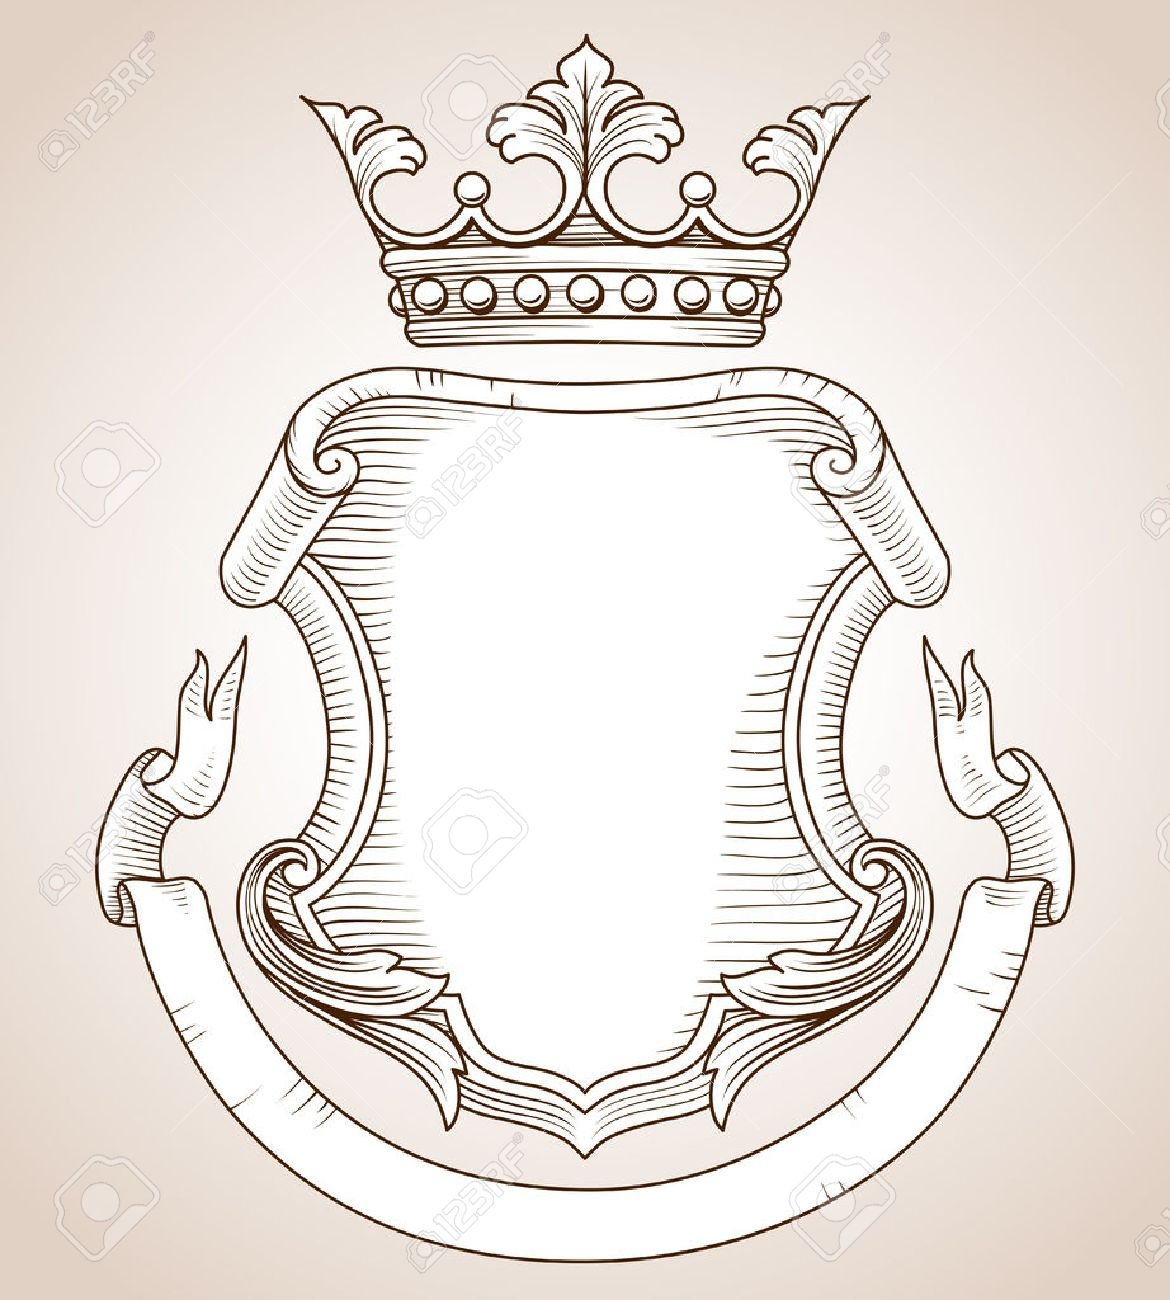 Coat of Arms - Hand-drawn, highly detailed Coat of Arms illustration - 31675663